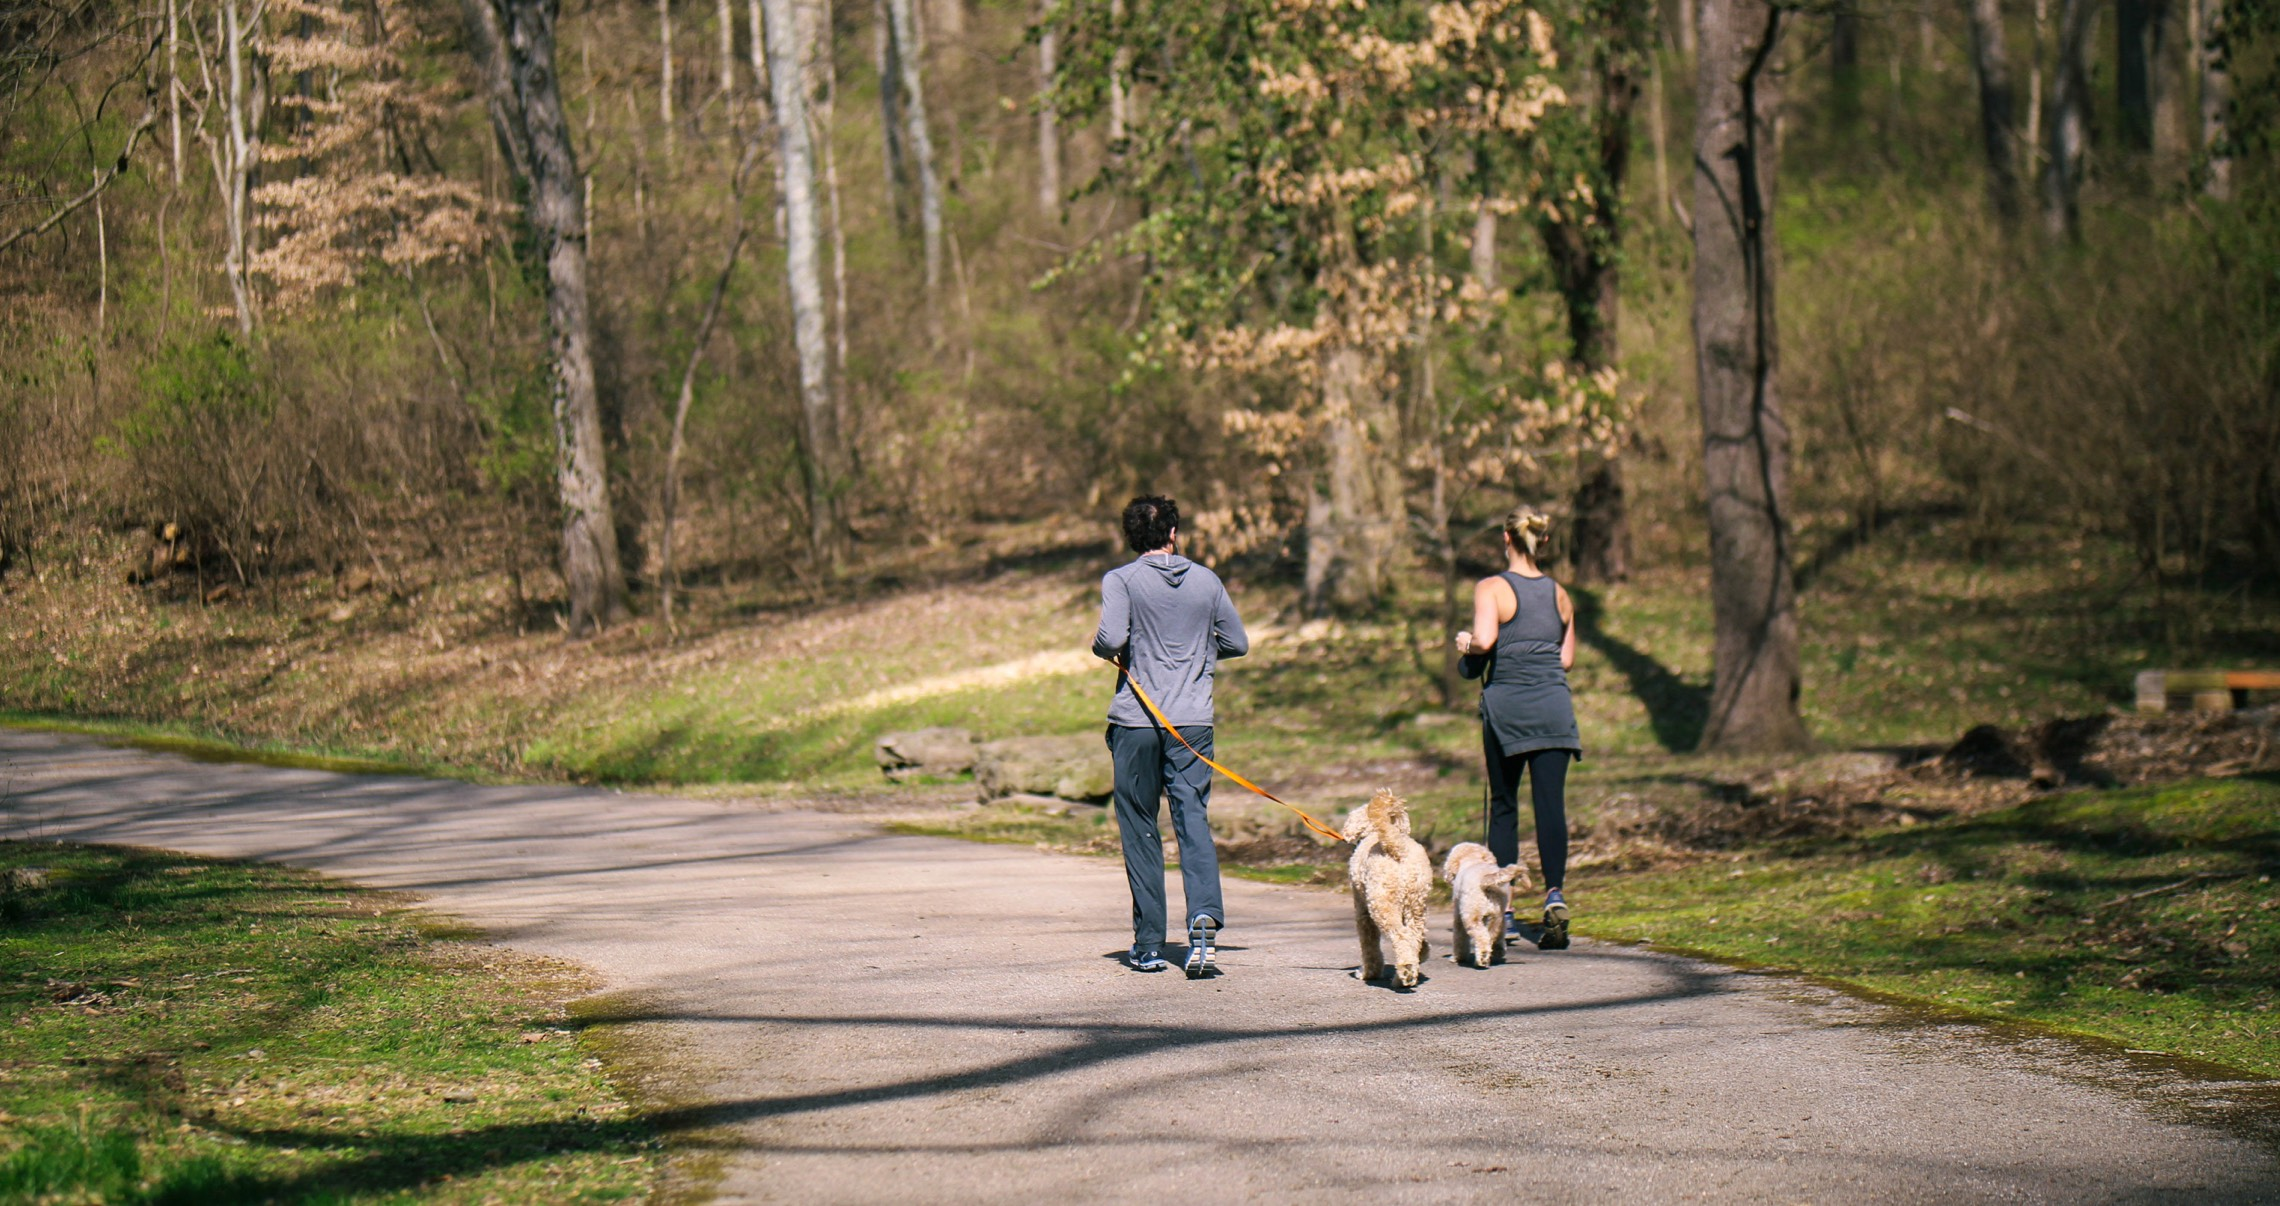 A couple jogging in the park with two dogs